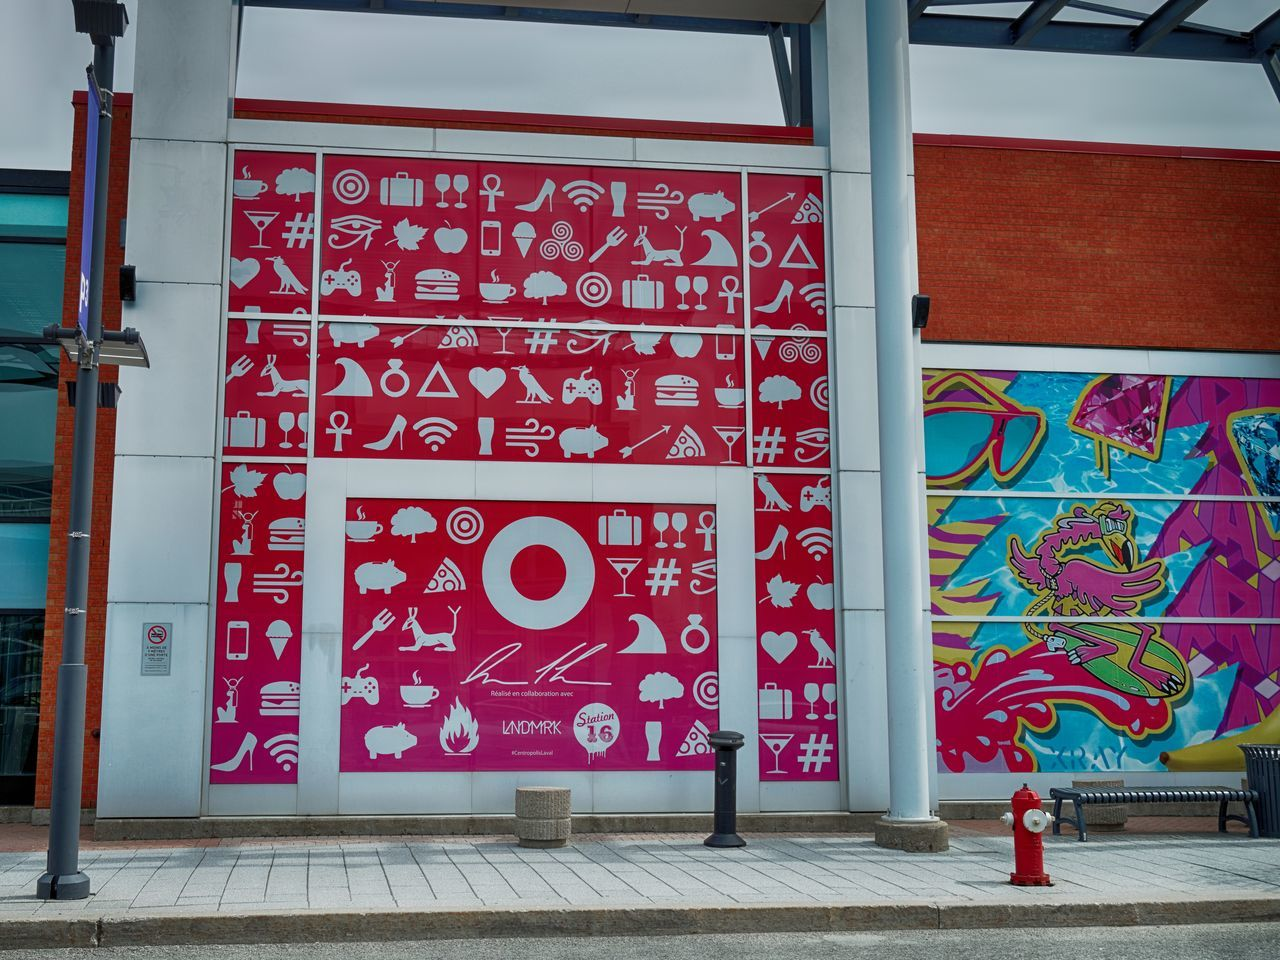 Architecture Art Building Exterior Built Structure Centropolis Day Emoji Hieroglyphs Modern Multicolor No People Outdoors Pink Red Shopping